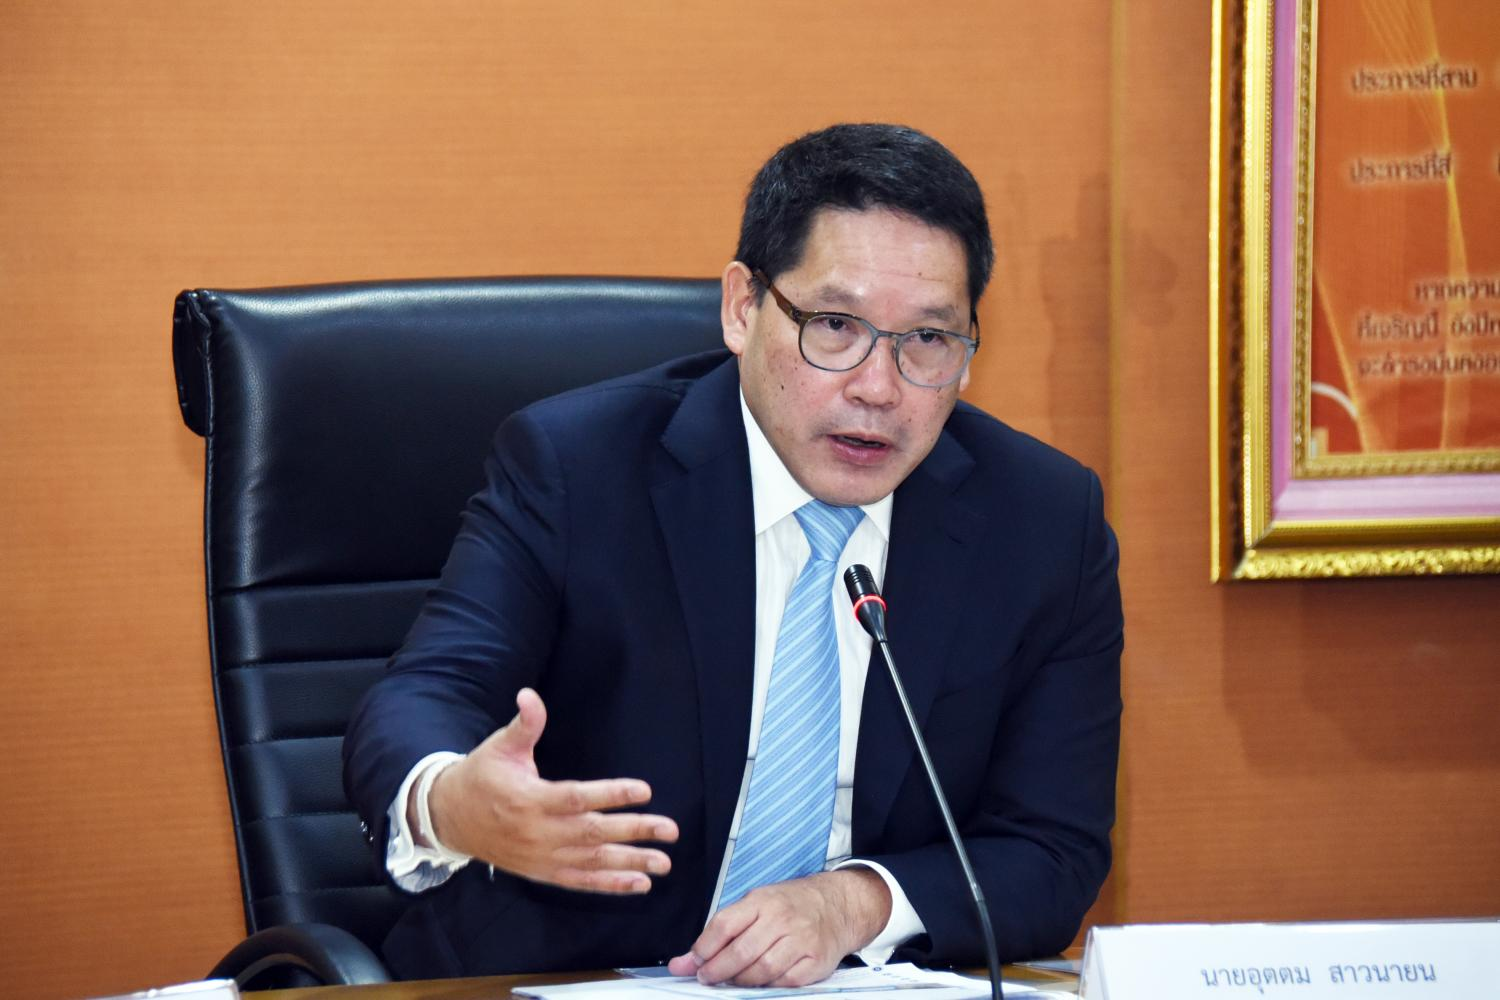 Mr Uttama says widening access to medical services, alleviating congestion at large hospitals and assisting top-scoring students who have financial difficulties will be Finance Ministry priorities.